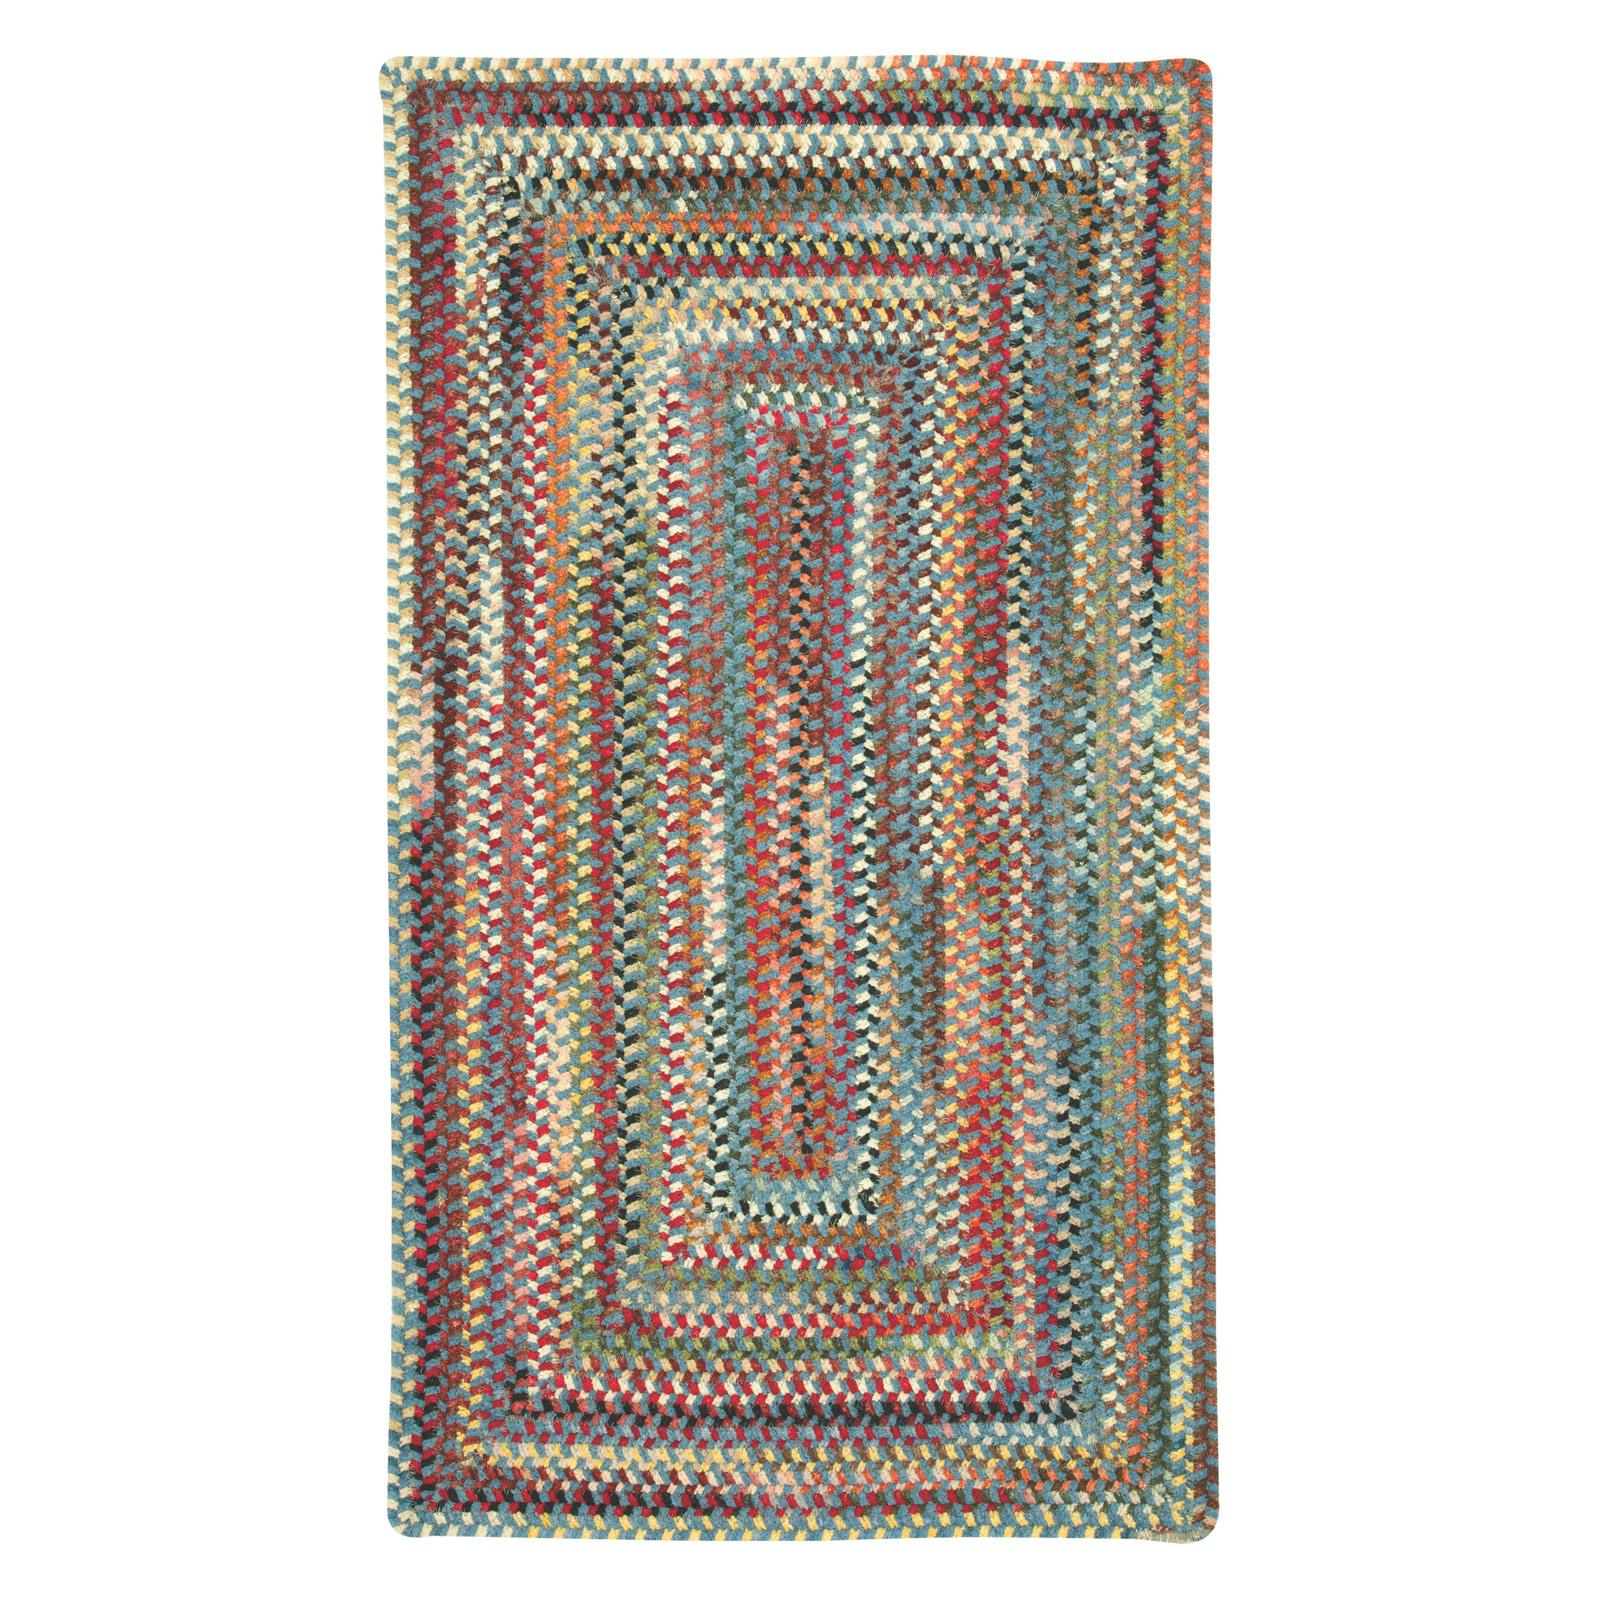 Eaton 0442 Concentric Braided Rectangle Area Rug - Blue Blue - 0442QS04000600400